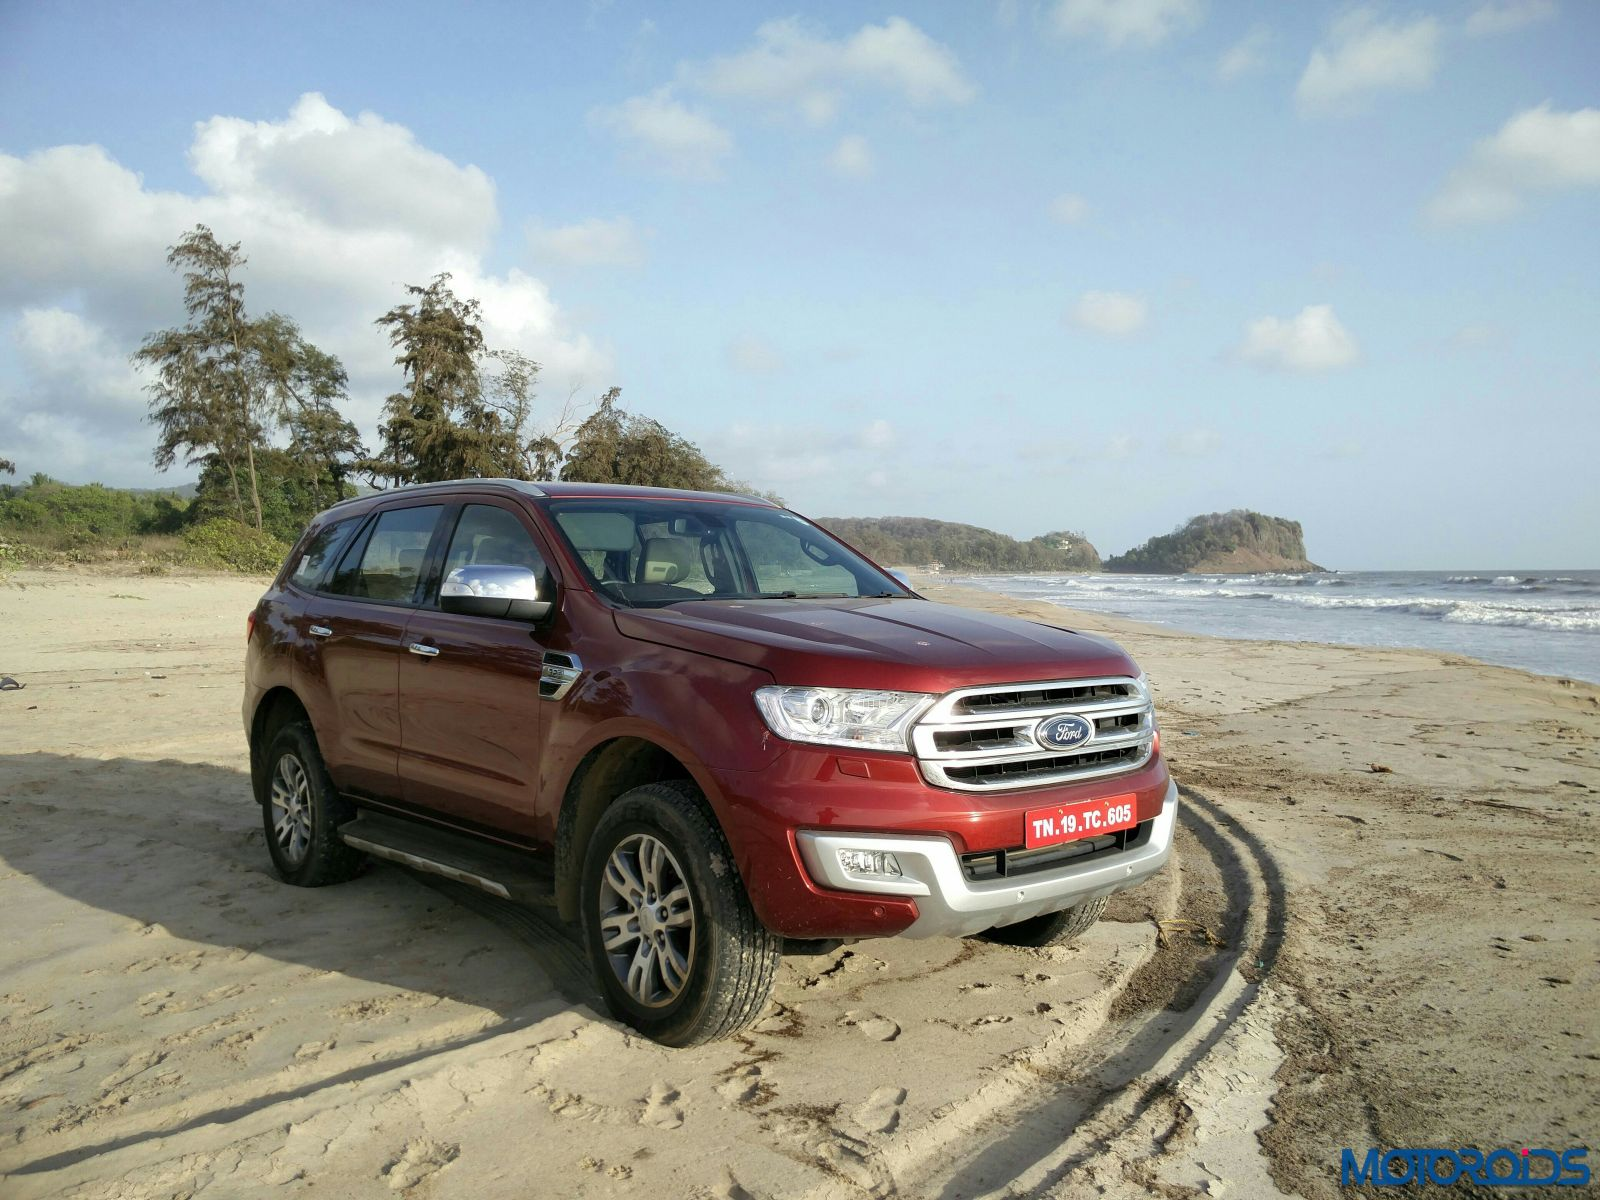 New Ford Endeavour 3.2 AT (125)